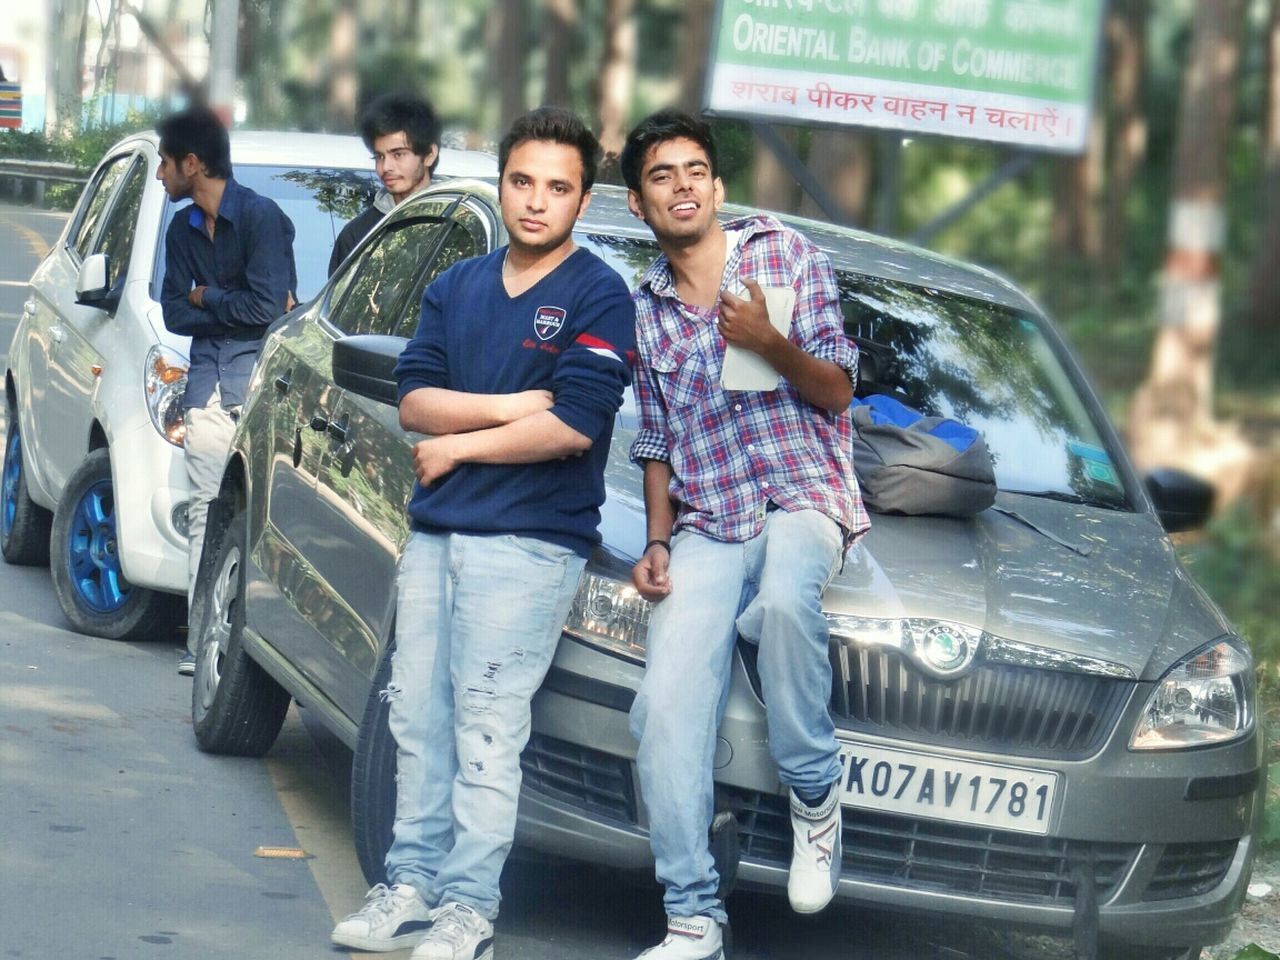 car, looking at camera, transportation, portrait, smiling, full length, front view, men, casual clothing, togetherness, young men, standing, outdoors, young adult, day, happiness, real people, people, adult, adults only